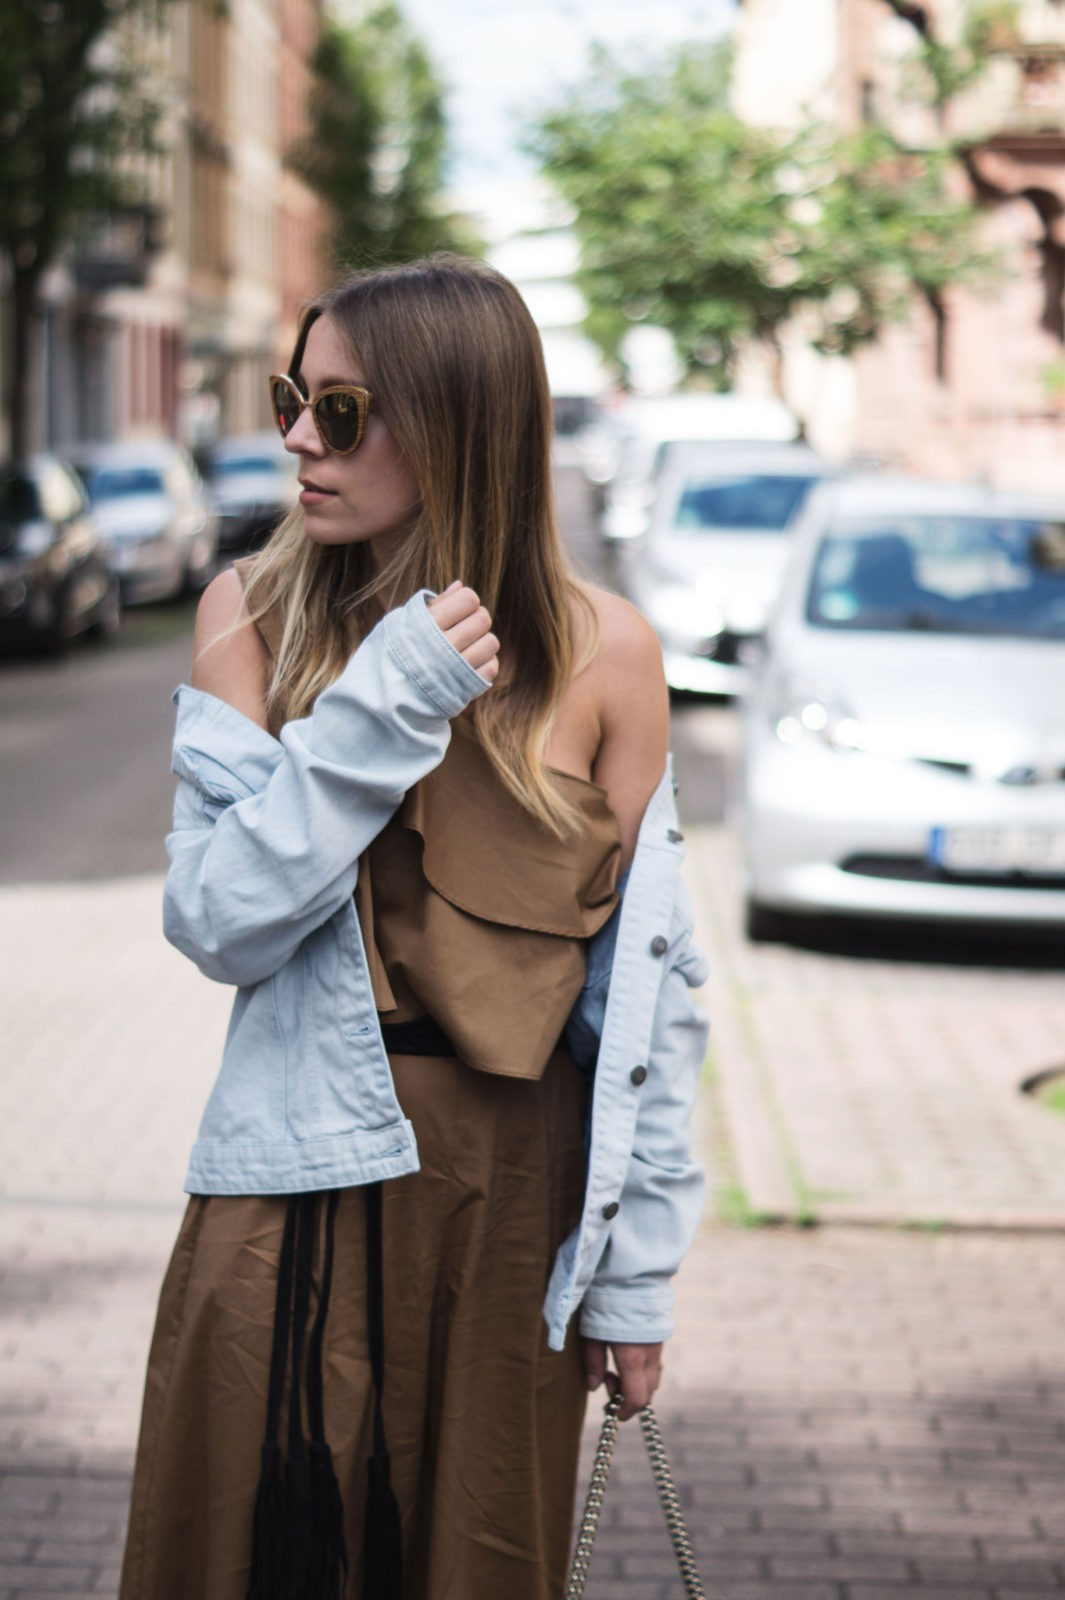 Sariety-Modeblog-Sarah-Czok-Fashionblogger-Streetstyle-Outfit-Jumpsuit-Obersize-Denim-Jeansjacke-1